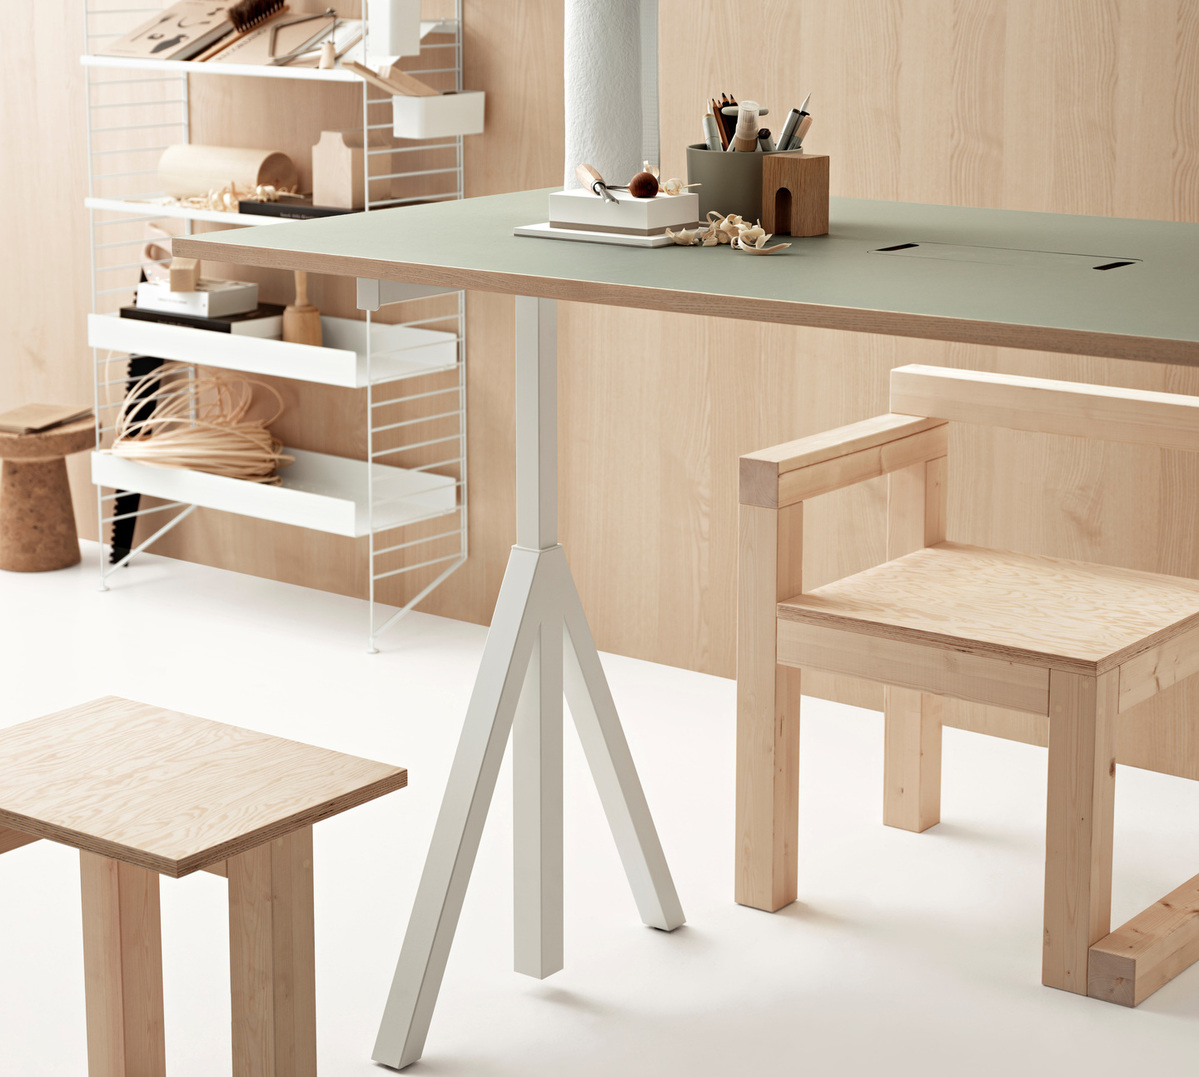 Floor mounted workspace solution from String. Floor panels, metal shelves high and low, metal shoe shelf and organizers in white. Sit-stand table from Works™ ..by String Furniture. With a white base and a modern coloured tabletop in light grey linoleum. A modern design on a classic height-adjustable office table.